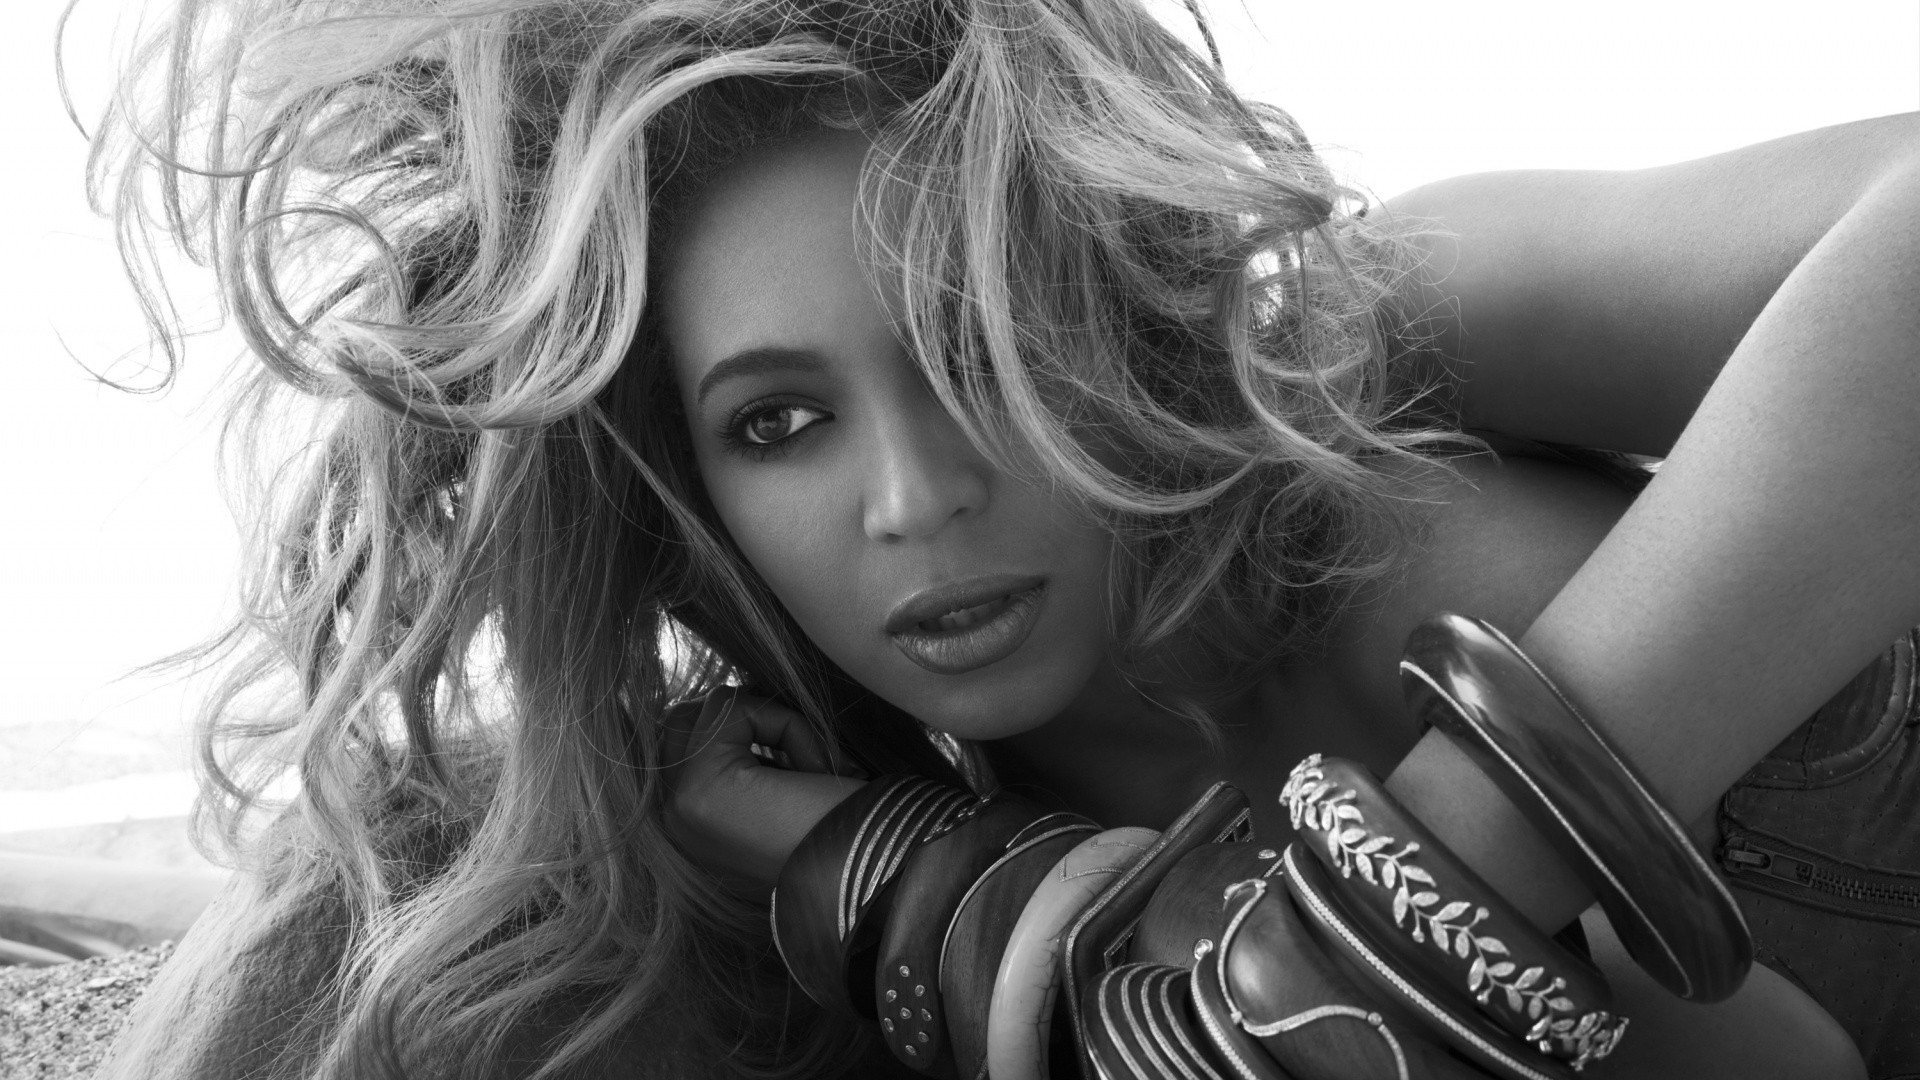 Beyonce Knowles Wallpapers Images Photos Pictures Backgrounds 1920x1080